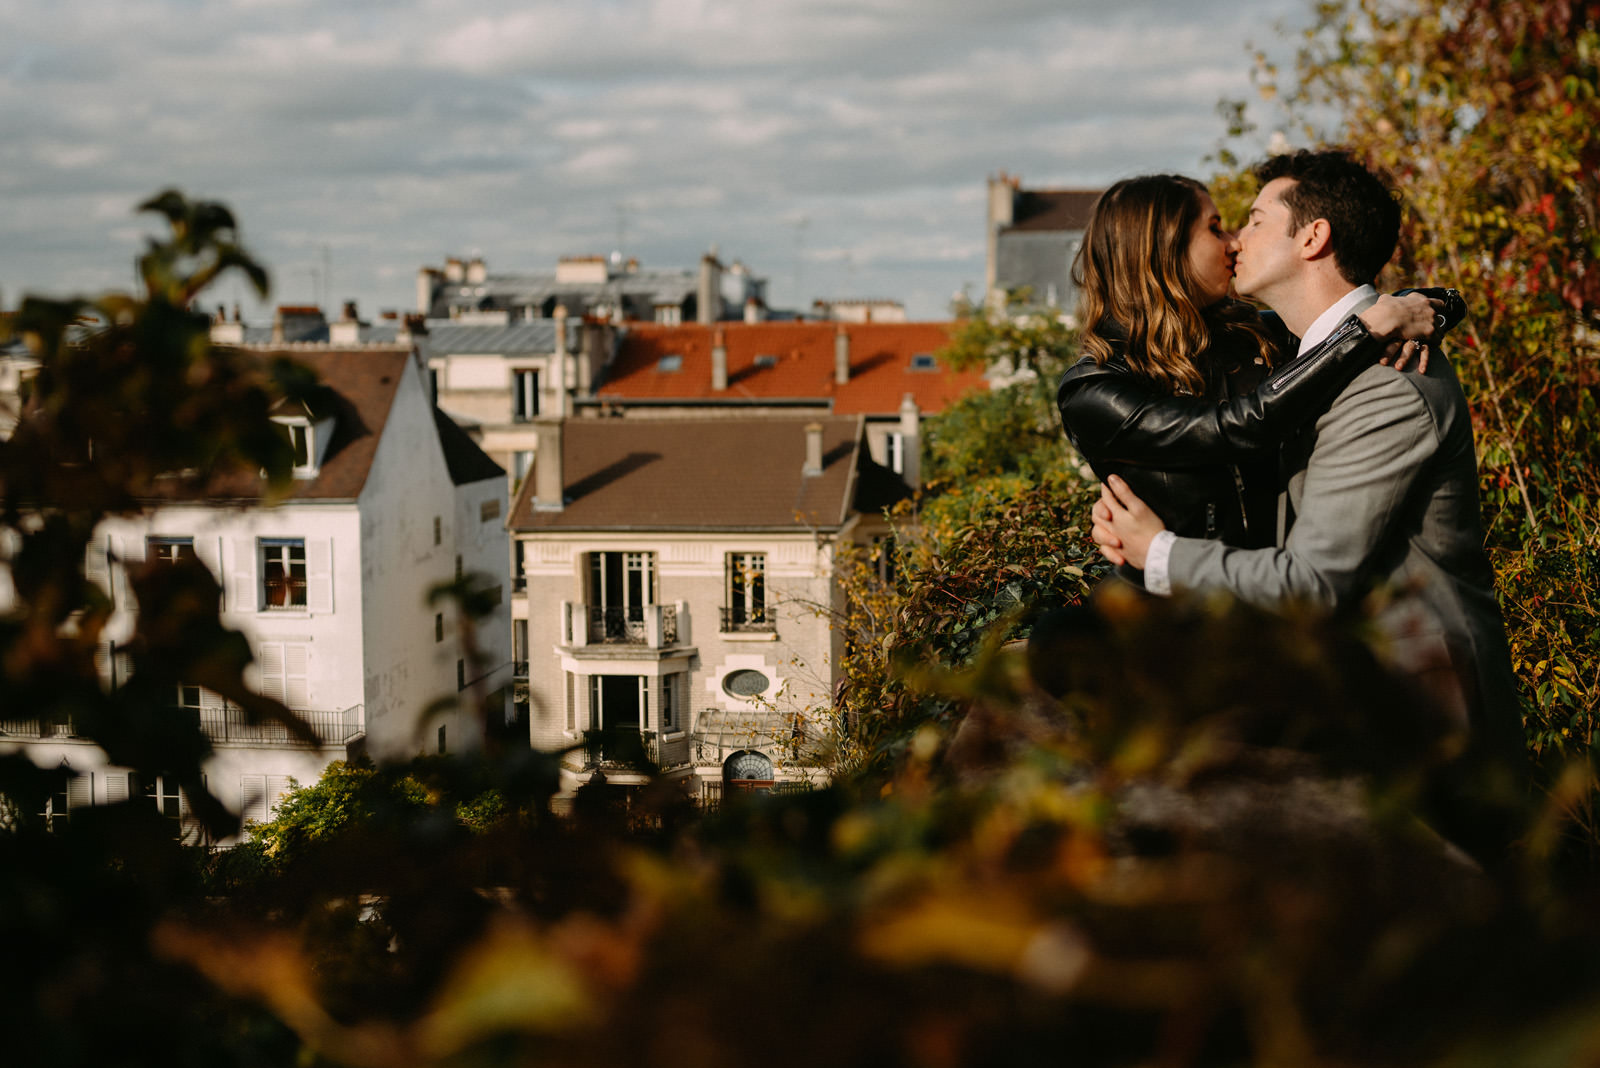 Intimate engagement portrait in Paris by Luke Sezeck wedding photographer - Montmartre